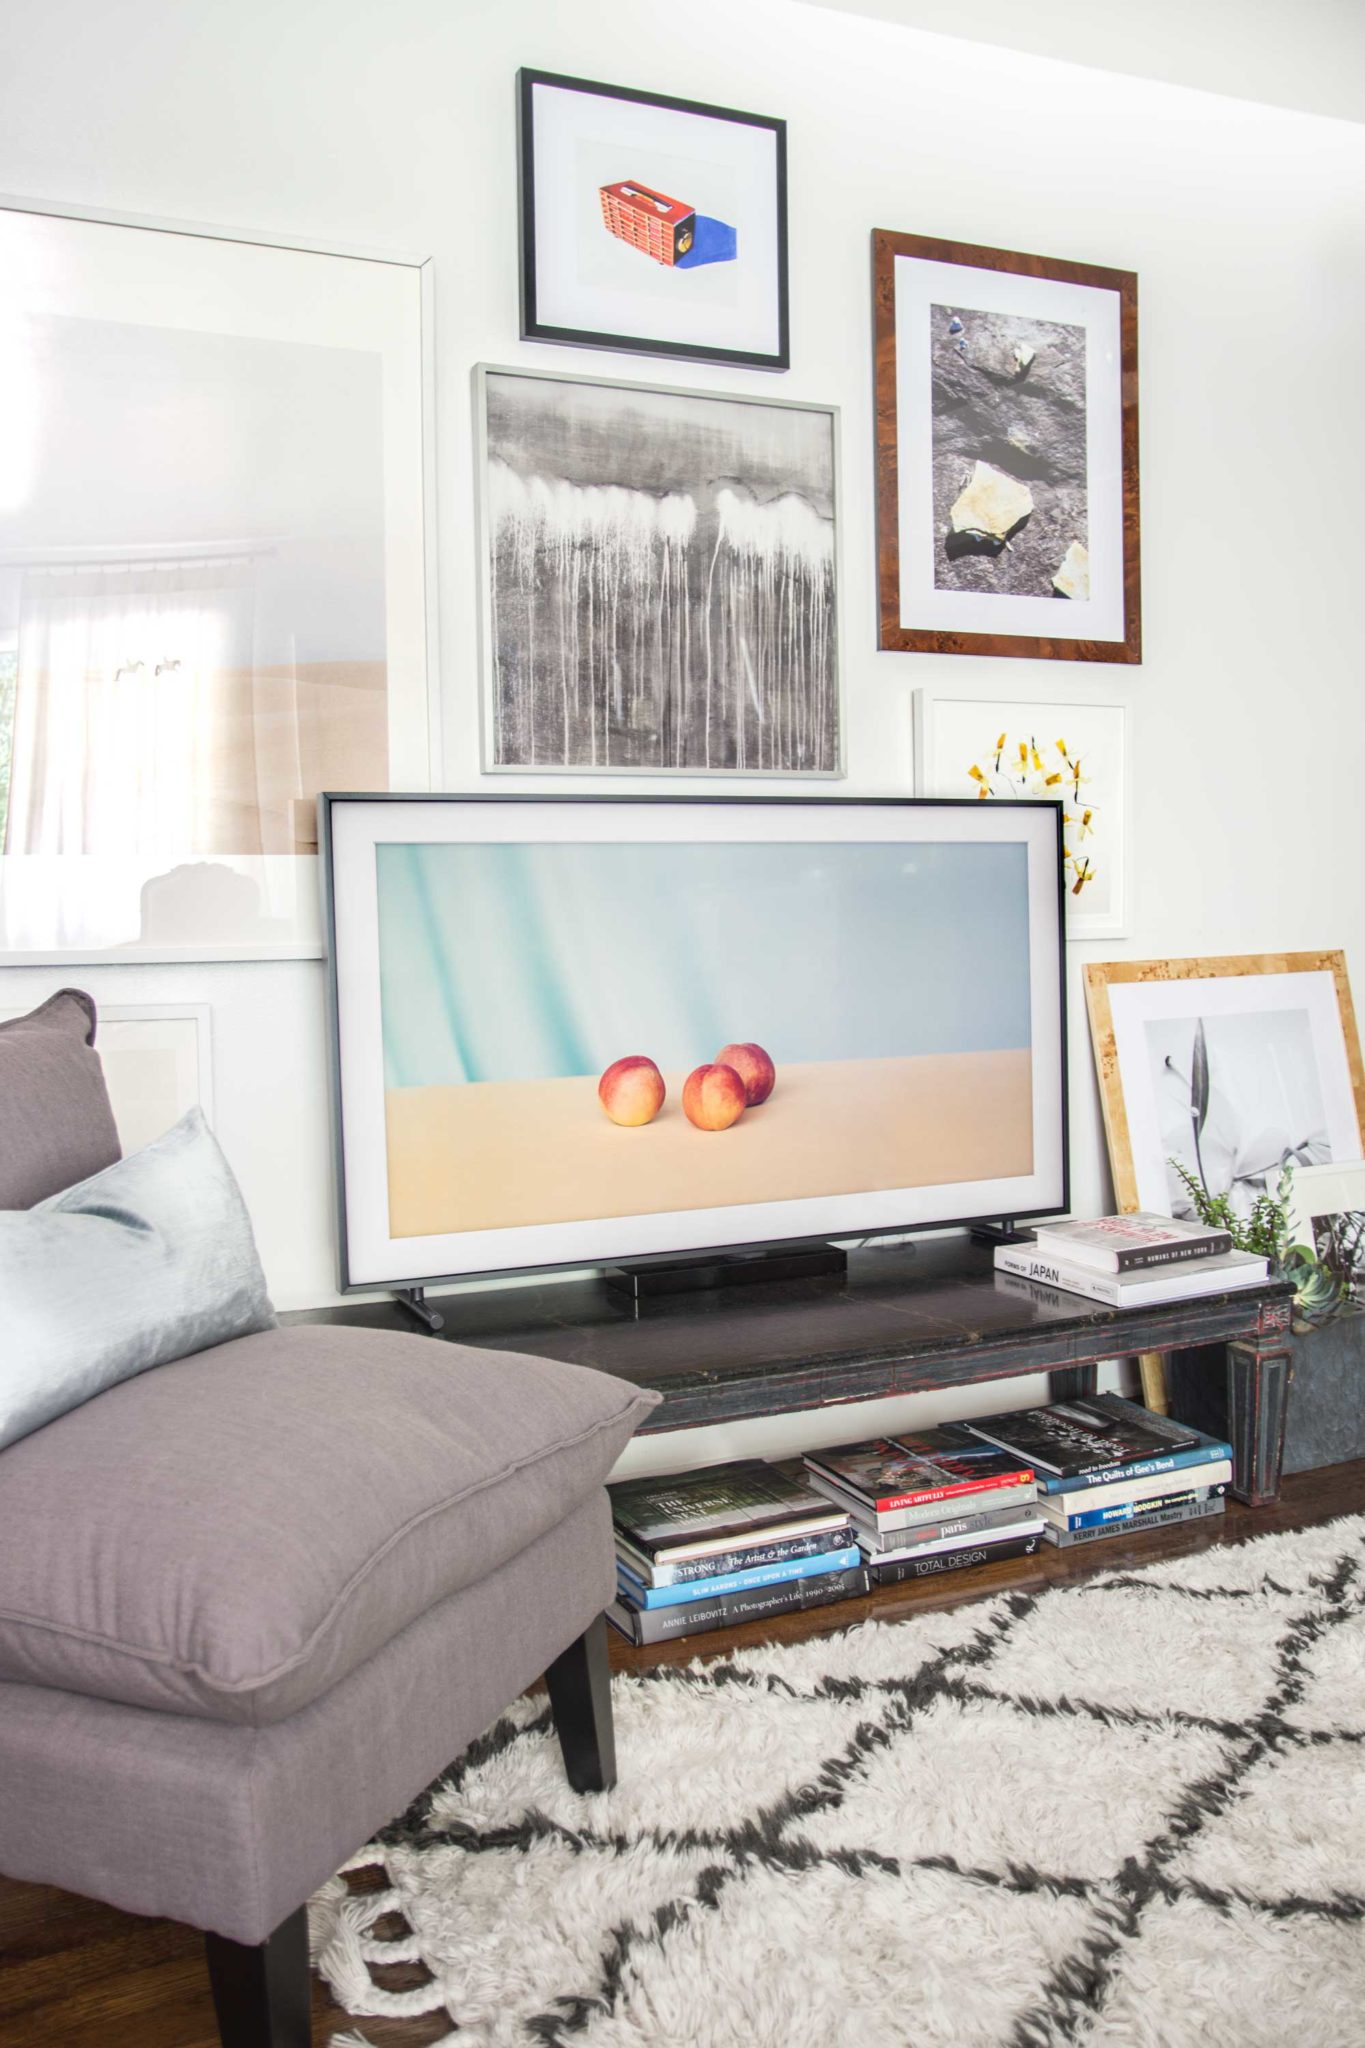 The Frame: A TV for the Living Room - Thou Swell